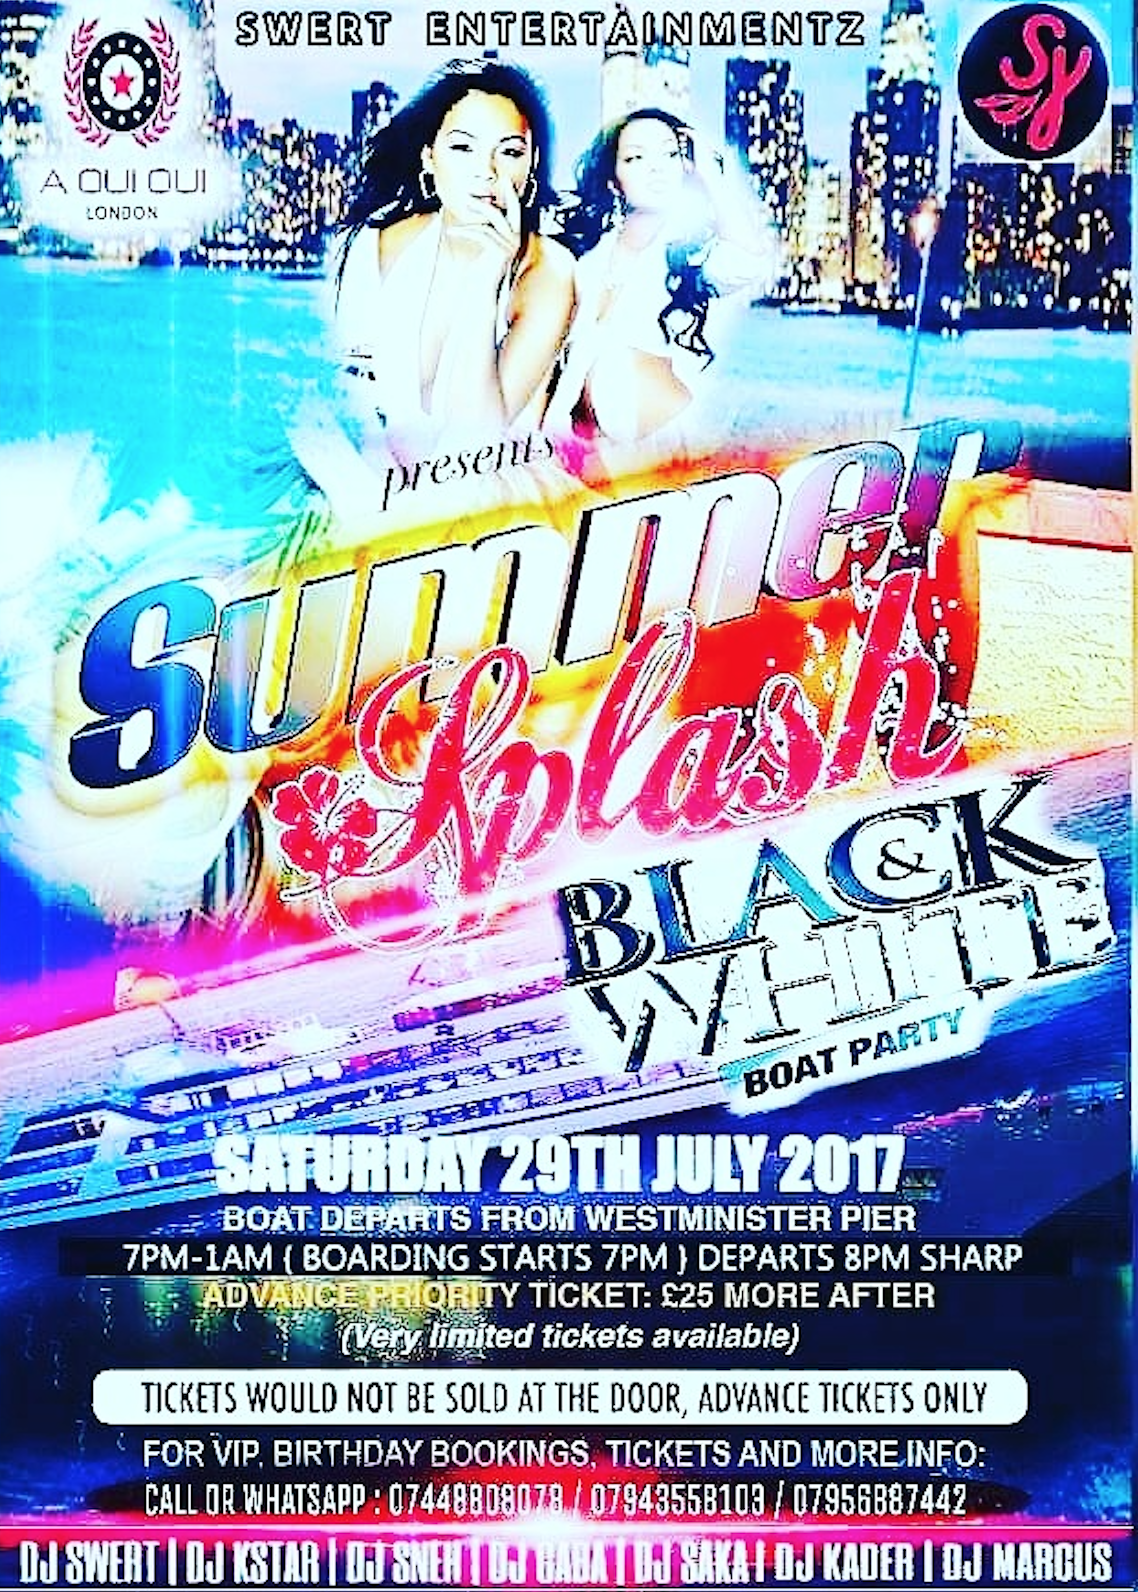 Summer Splash Boat Party  Saturday 29th July 2017